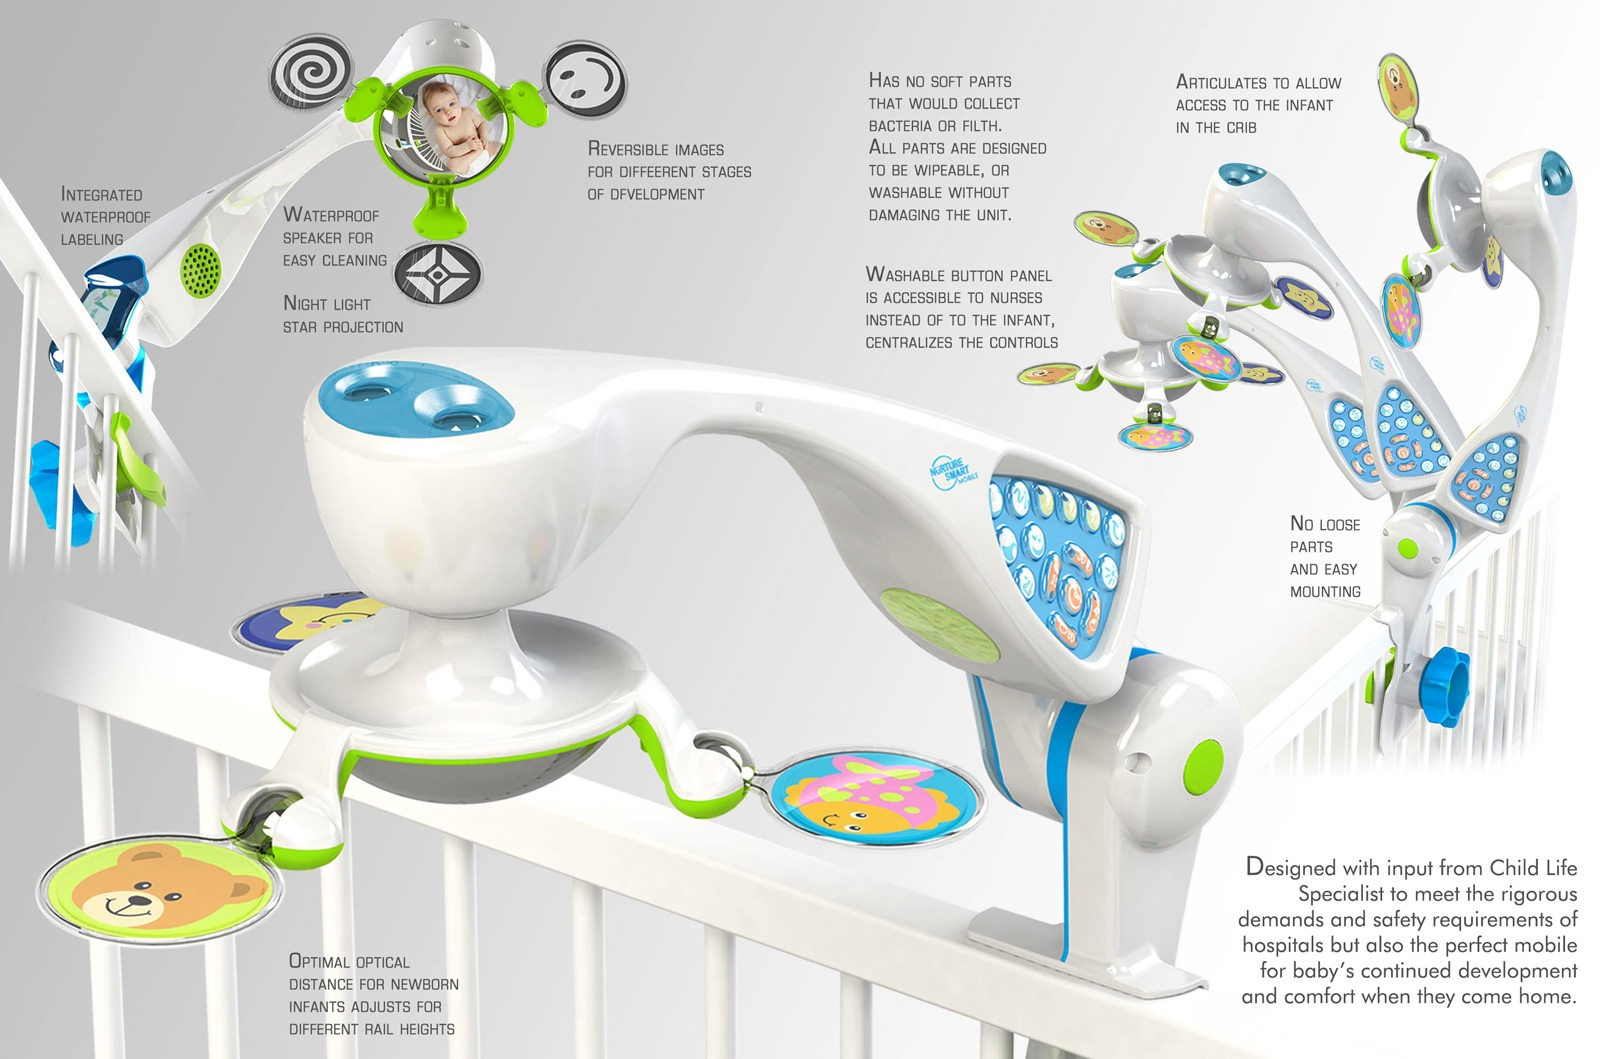 Nurture Smart has so many features as a crib mobile